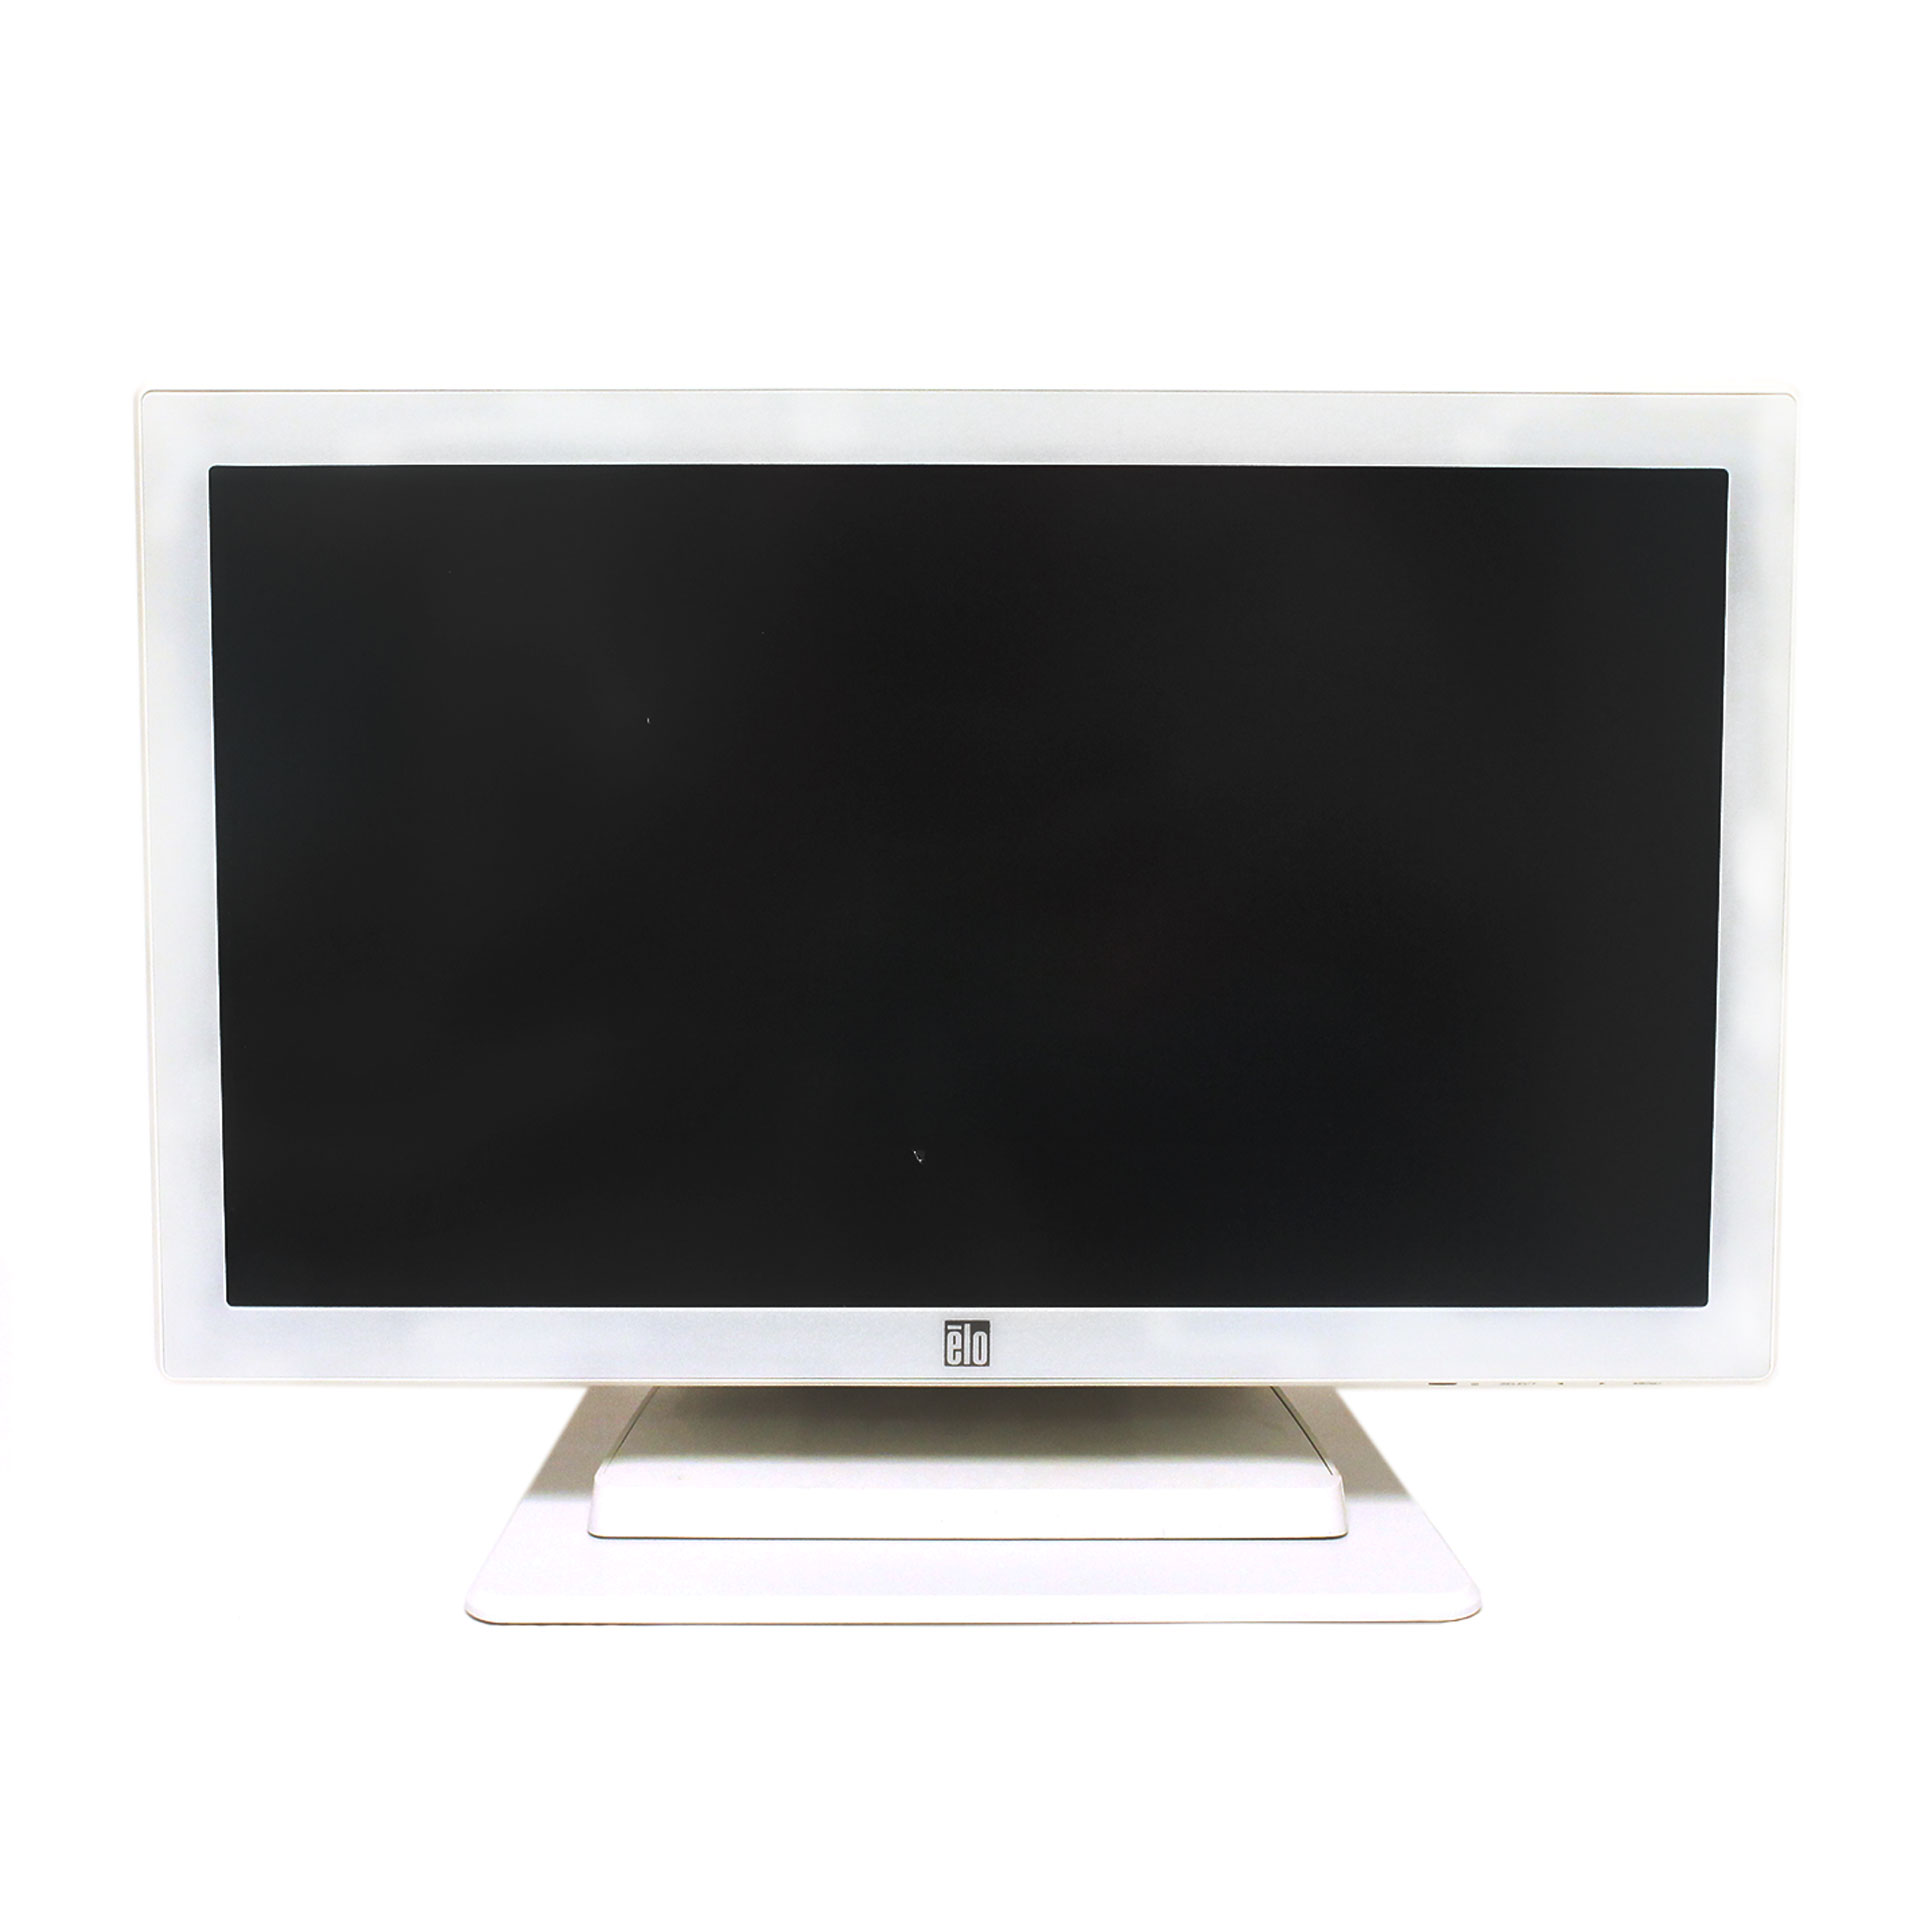 "Elo 1919LM White E849623 19"" Desktop Touchscreen monitor"